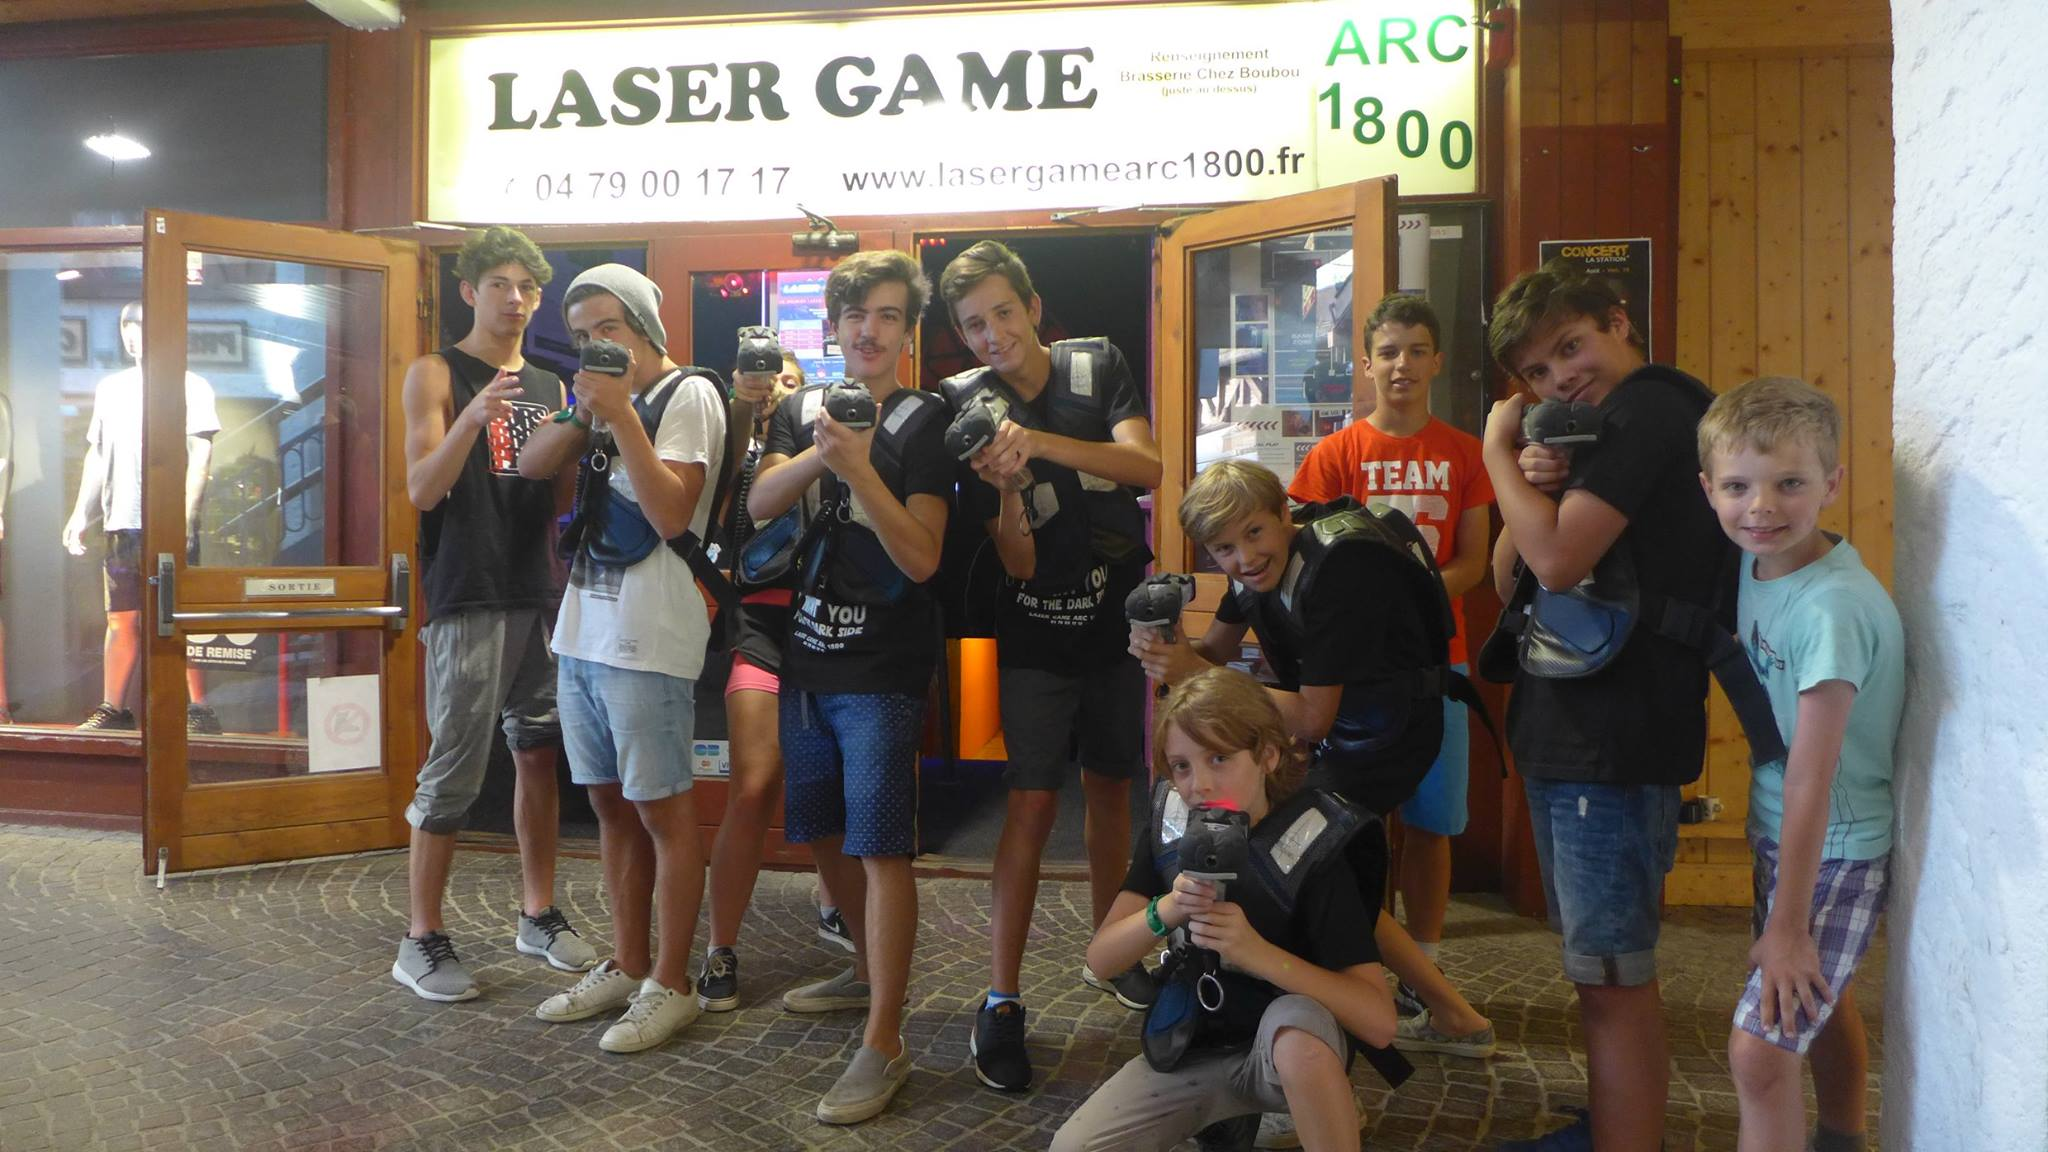 LASER GAME ARC 1800 CHEZ BOUBOU2